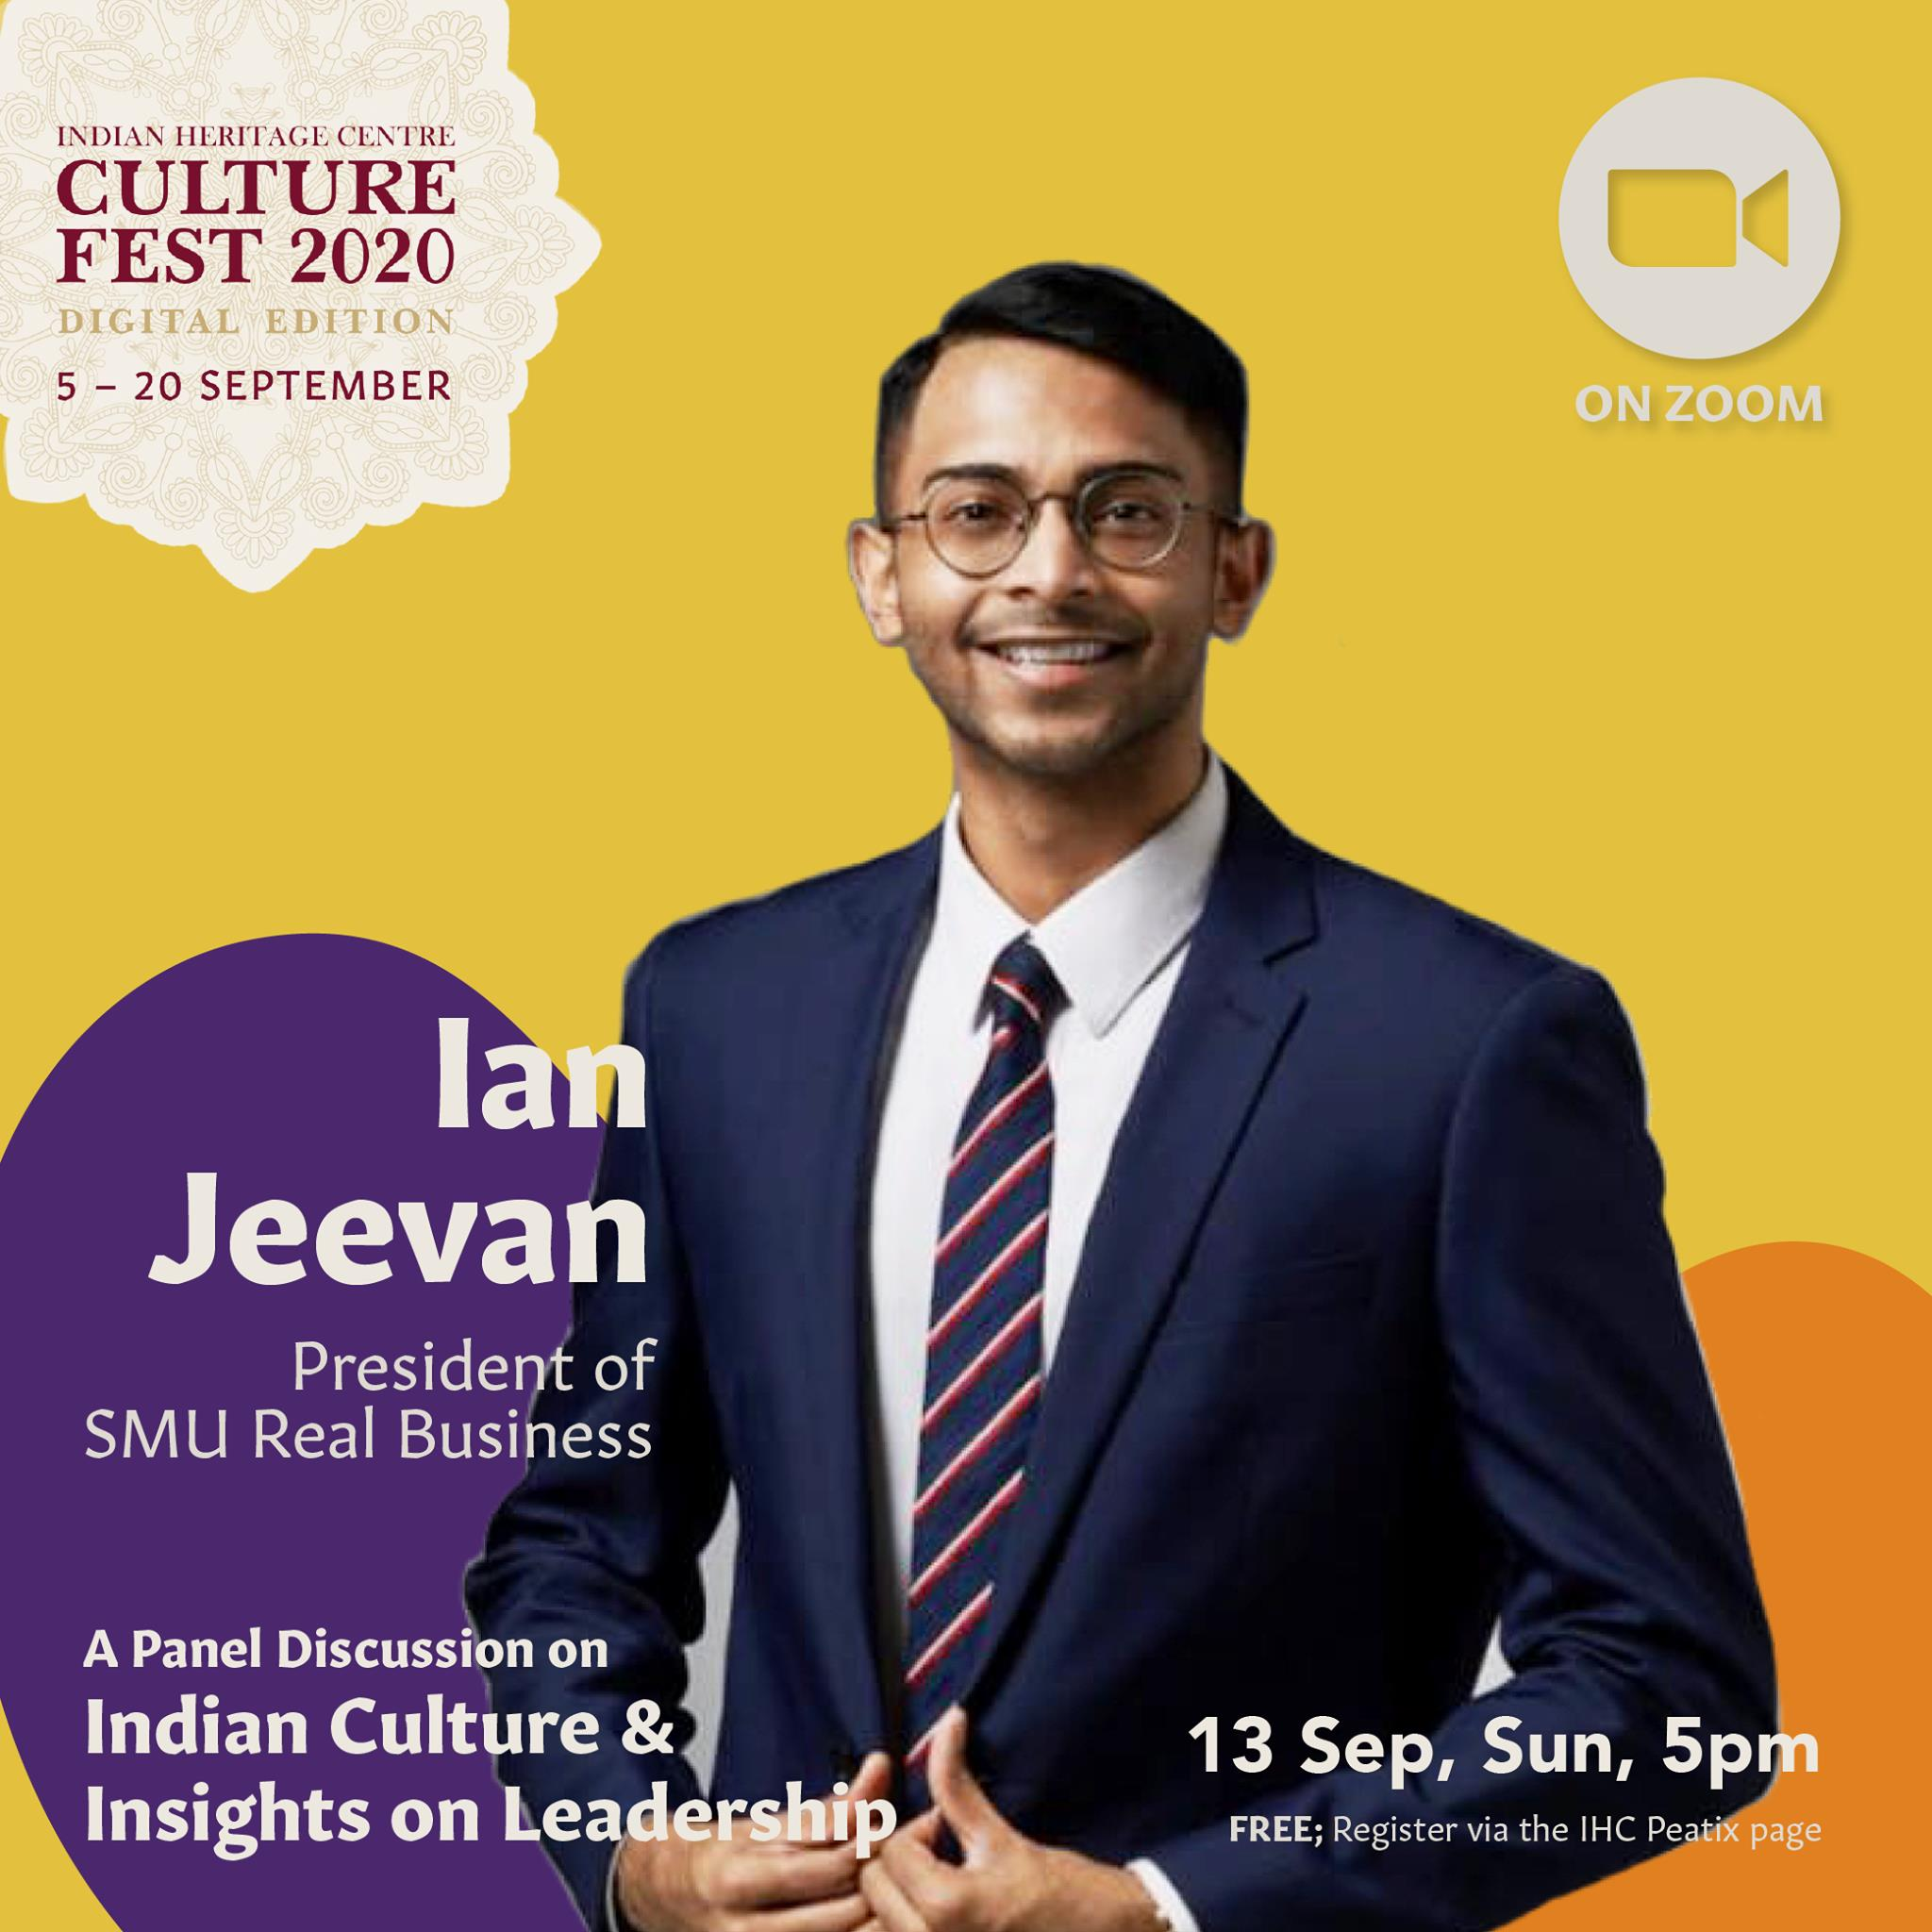 Ian Jeevan Arumugam - is the President of SMU Real Business Club that aims to support and equip budding entrepreneurs. With his own creative videos, Jeevan is an upcoming and growing social media influencer as well. Photo Courtesy: IHC